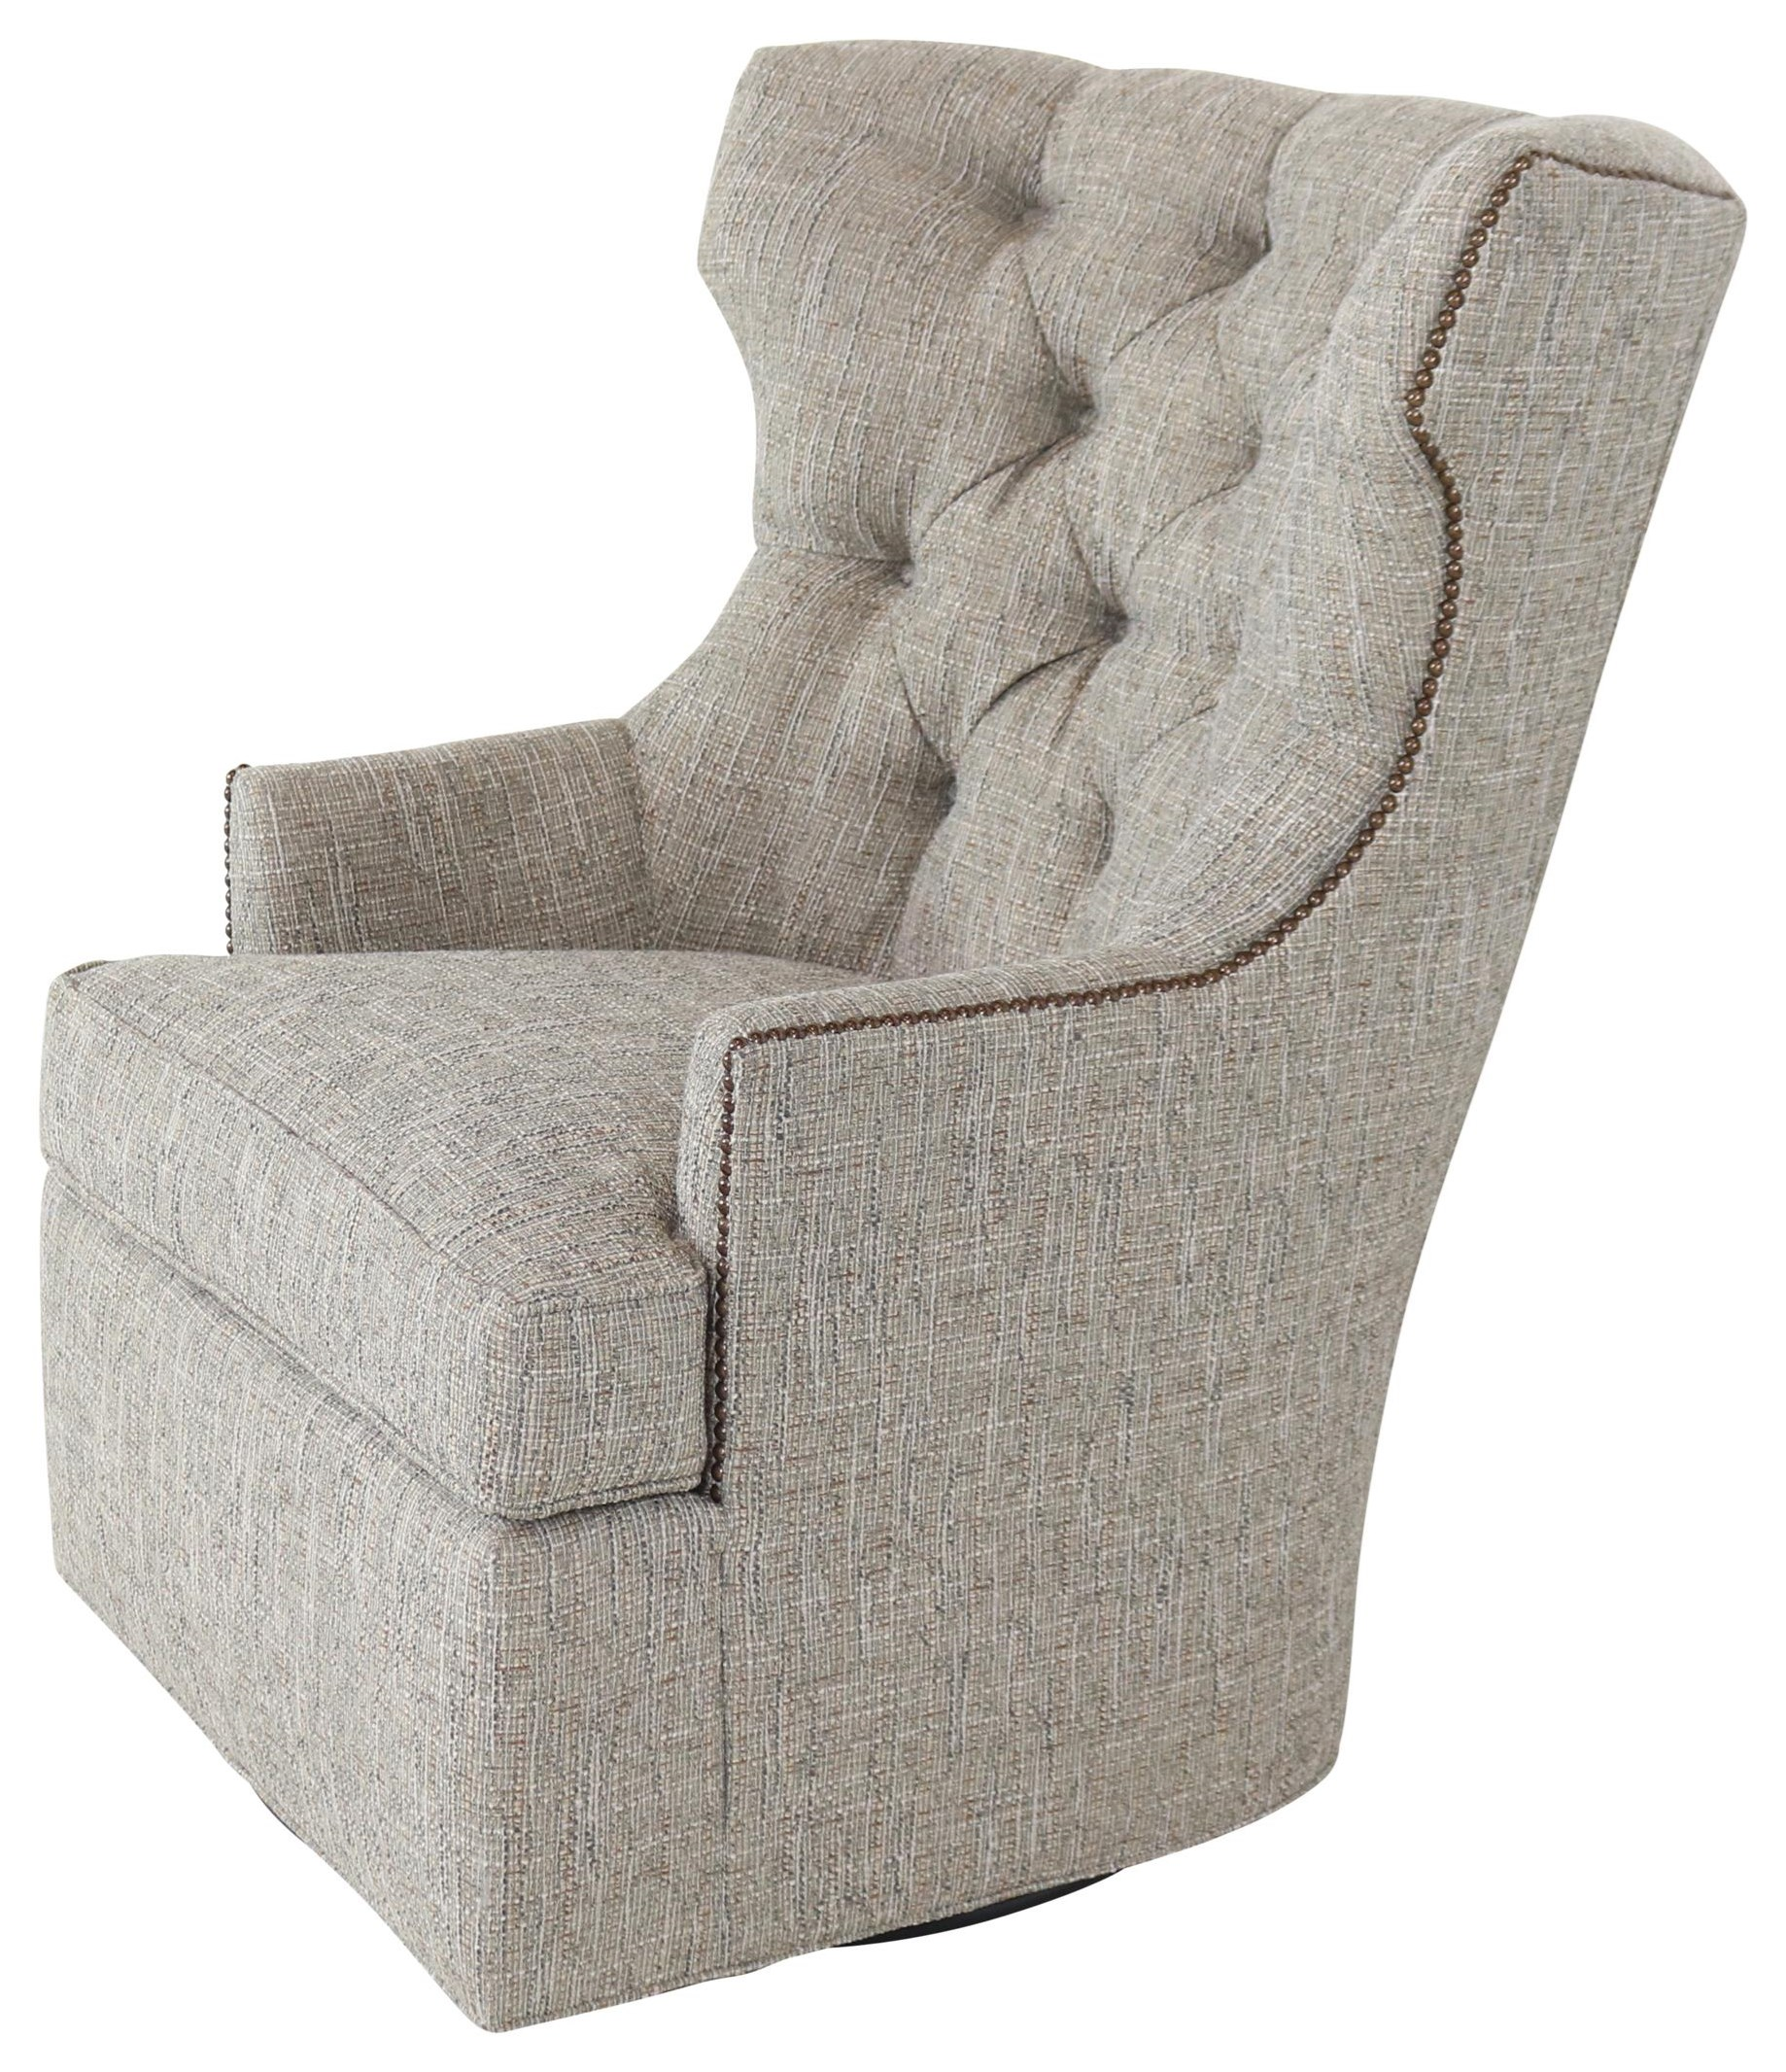 7413 Swivel Chair by Geoffrey Alexander at Sprintz Furniture